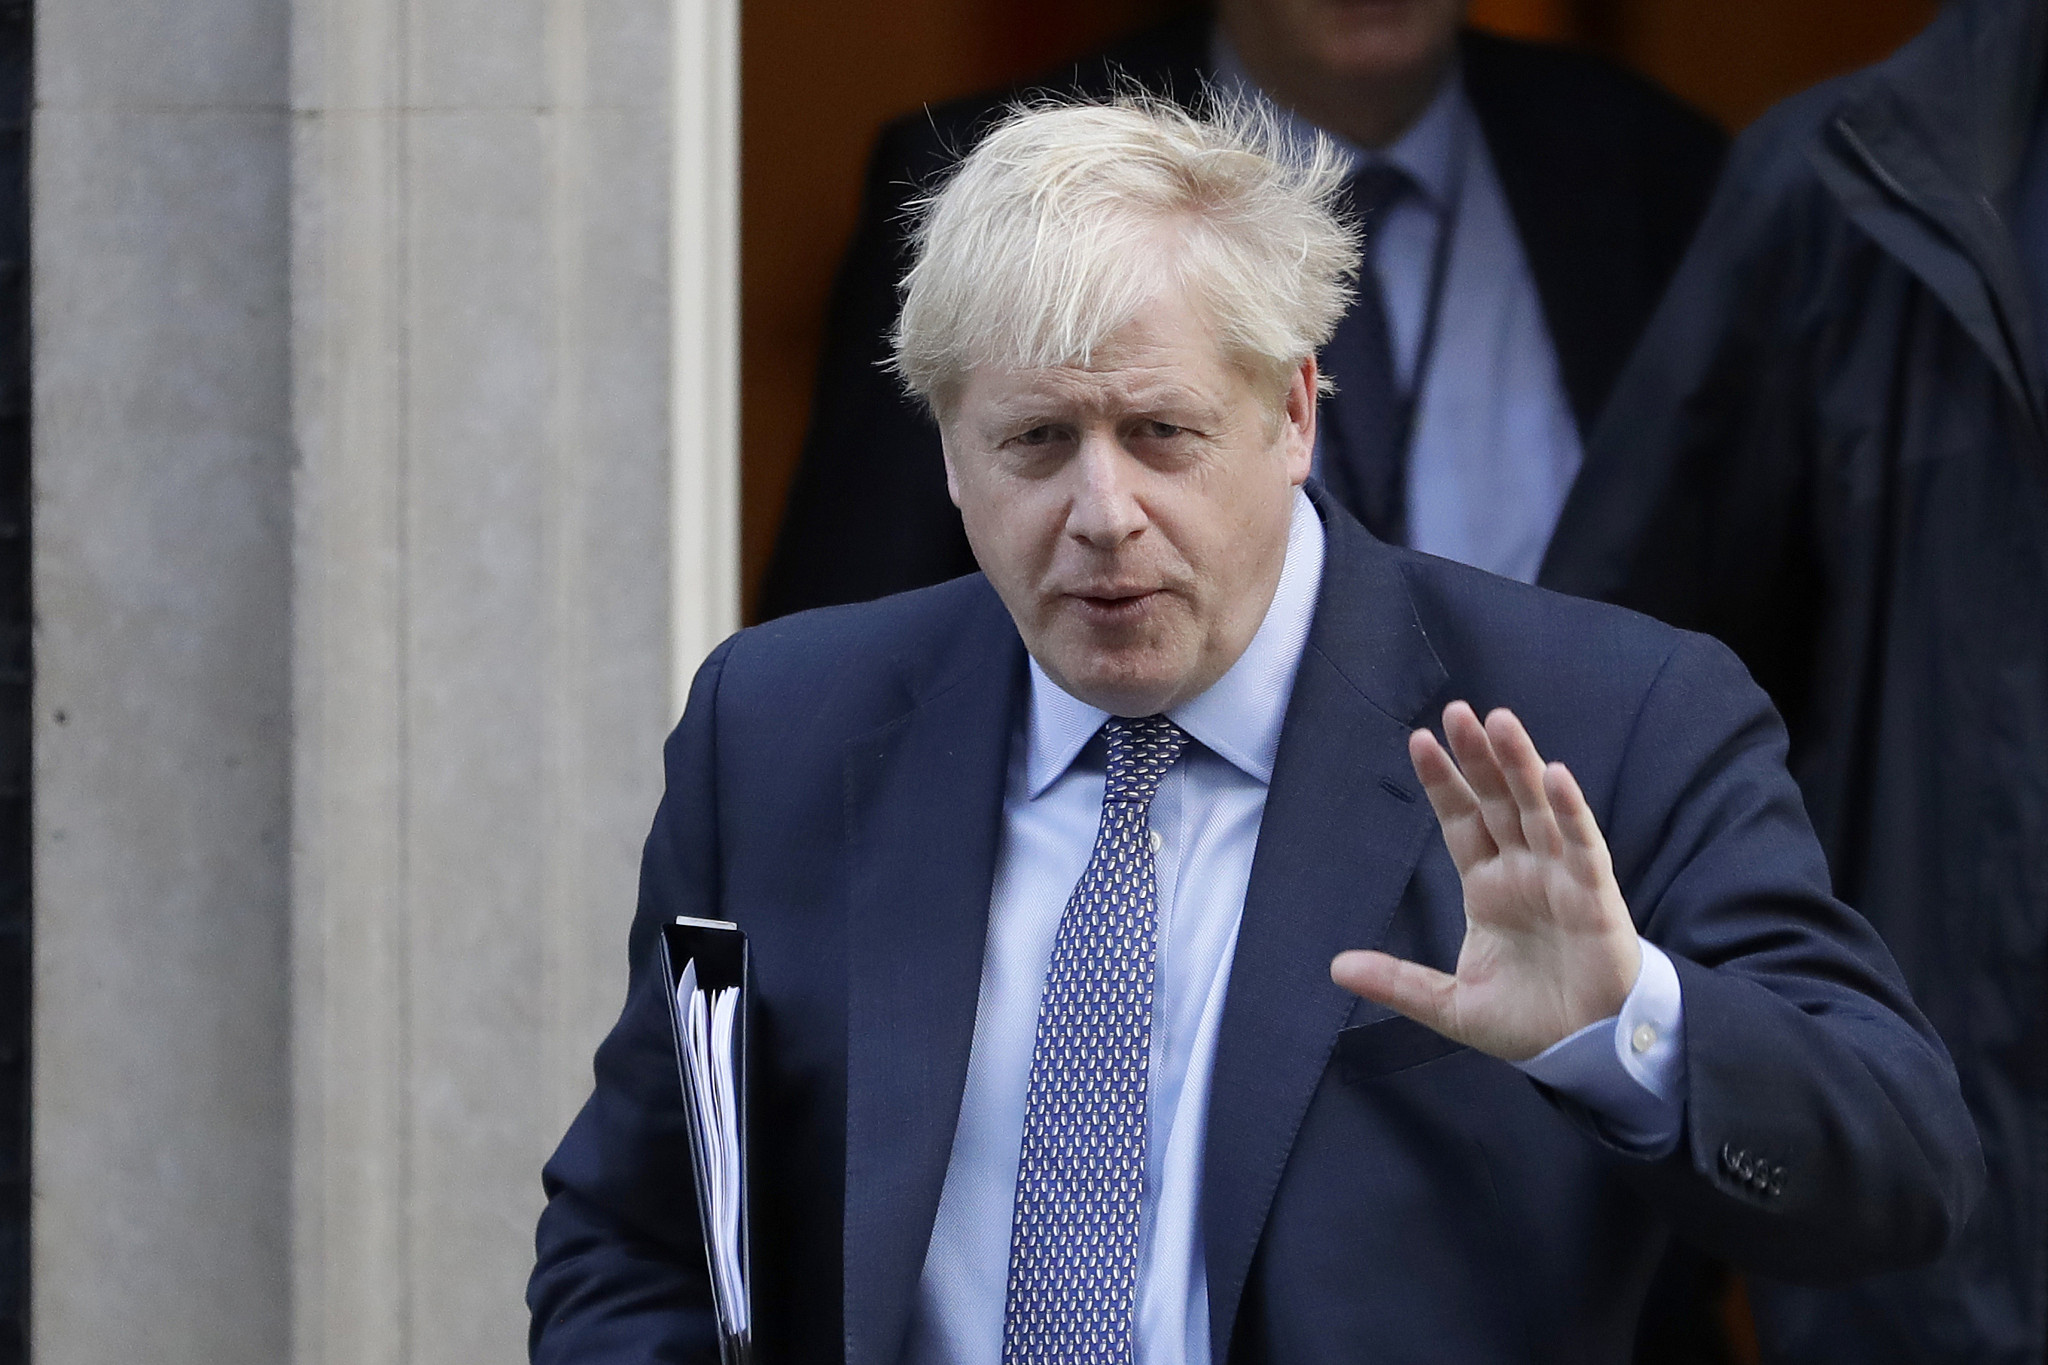 Delay looms after Johnson wins one vote, loses another